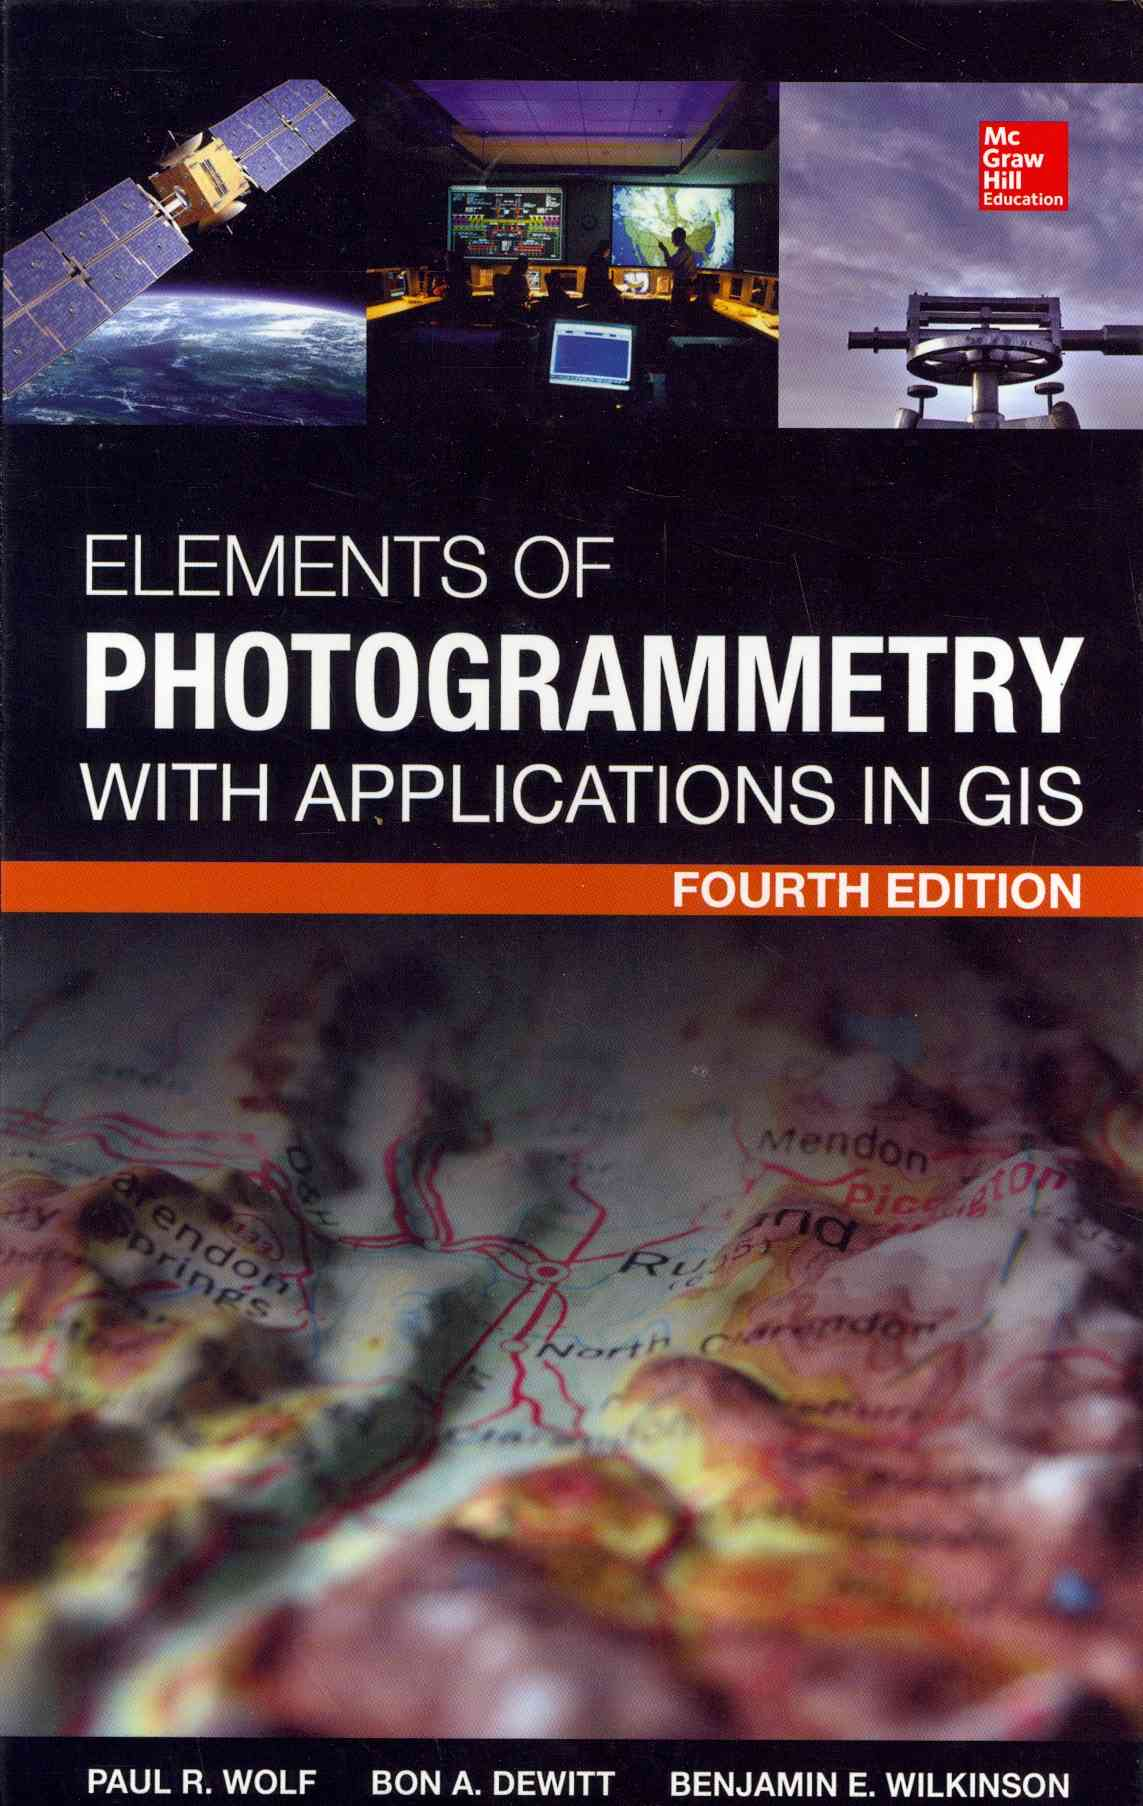 Elements of Photogrammetry With Application in Gis By Wolf, Paul R./ Dewitt, Bon A./ Wilkinson, Benjamin E.